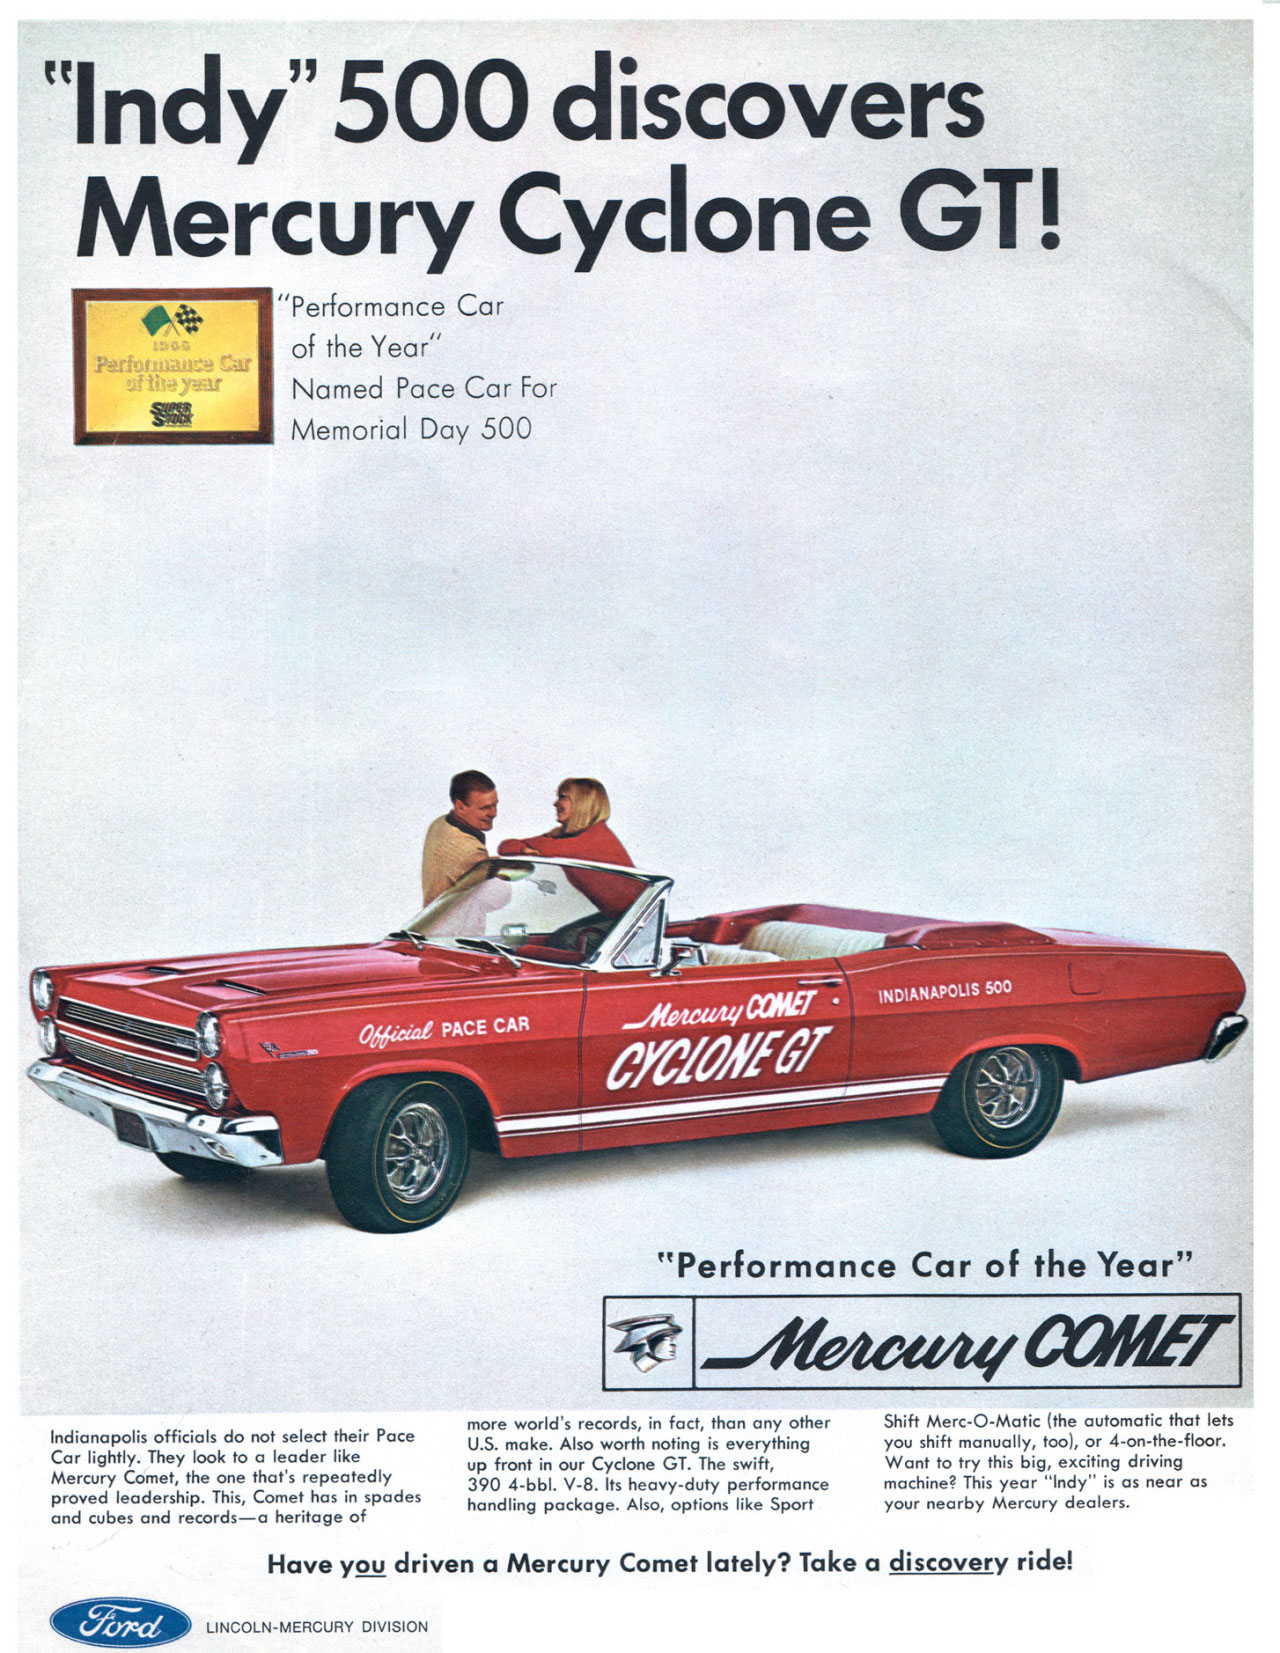 Indy 500 discovers Mercury Cyclone GT!  Performance Car of the Year Named Pace Car For Memorial Day 500    Indianapolis officials do not select their Pace Car lightly. They look to a leader like Mercury Comet, the one that's repeatedly proved leadership. This, Cornet has in spades and cubes and records—a heritage of  ''Performance Car of the Year''   more world's records, in fact, than any other U.S. make. Also worth noting is everything up front in our Cyclone GT. The swift, 390 4-bbl. V-8. Its heavy-duty performance handling package. Also, options like Sport  Shift Merc-O-Matic (the automatic that lets you shift manually, too), or 4-on-the-floor. Want to try this big, exciting driving machine? This year ''Indy- is as near as your nearby Mercury dealers.  Have you driven a Mercury Comet lately? Take a discovery ride!  LINCOLN-MERCURY DIVISION